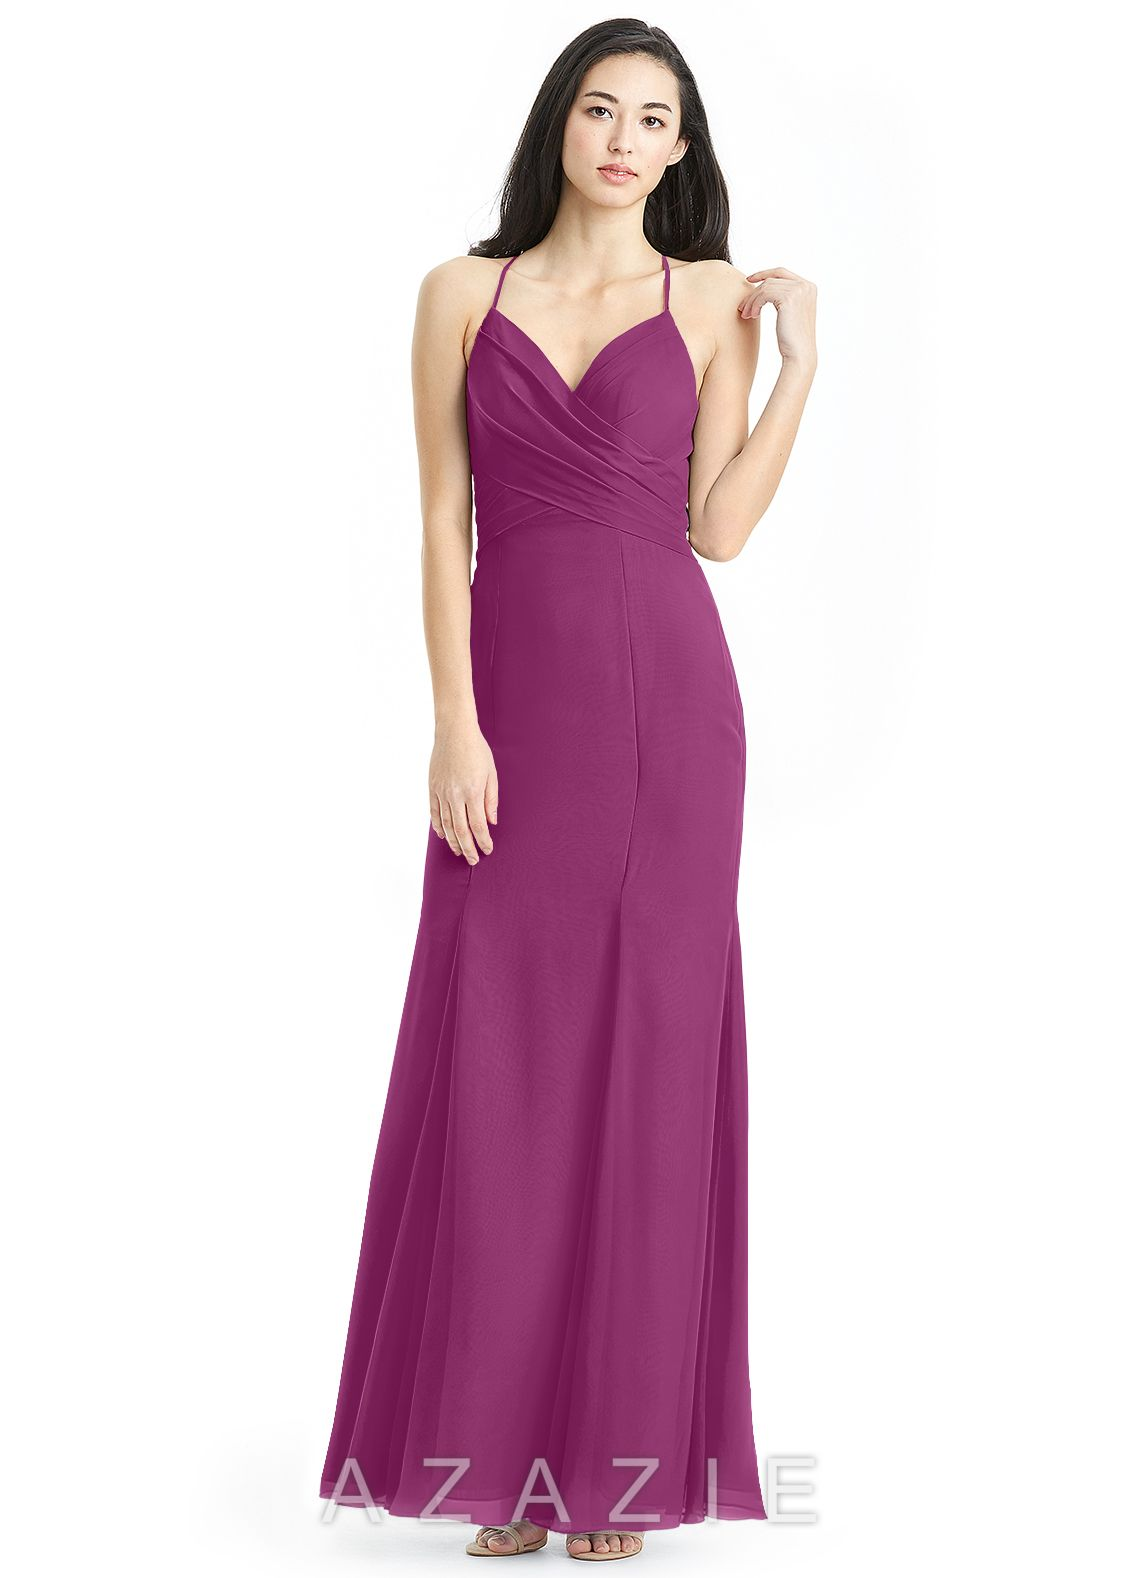 50a9e7b9d88 Shop Azazie Bridesmaid Dress - Carolina in Chiffon. Find the perfect  made-to-order bridesmaid dresses for your bridal party in your favorite  color